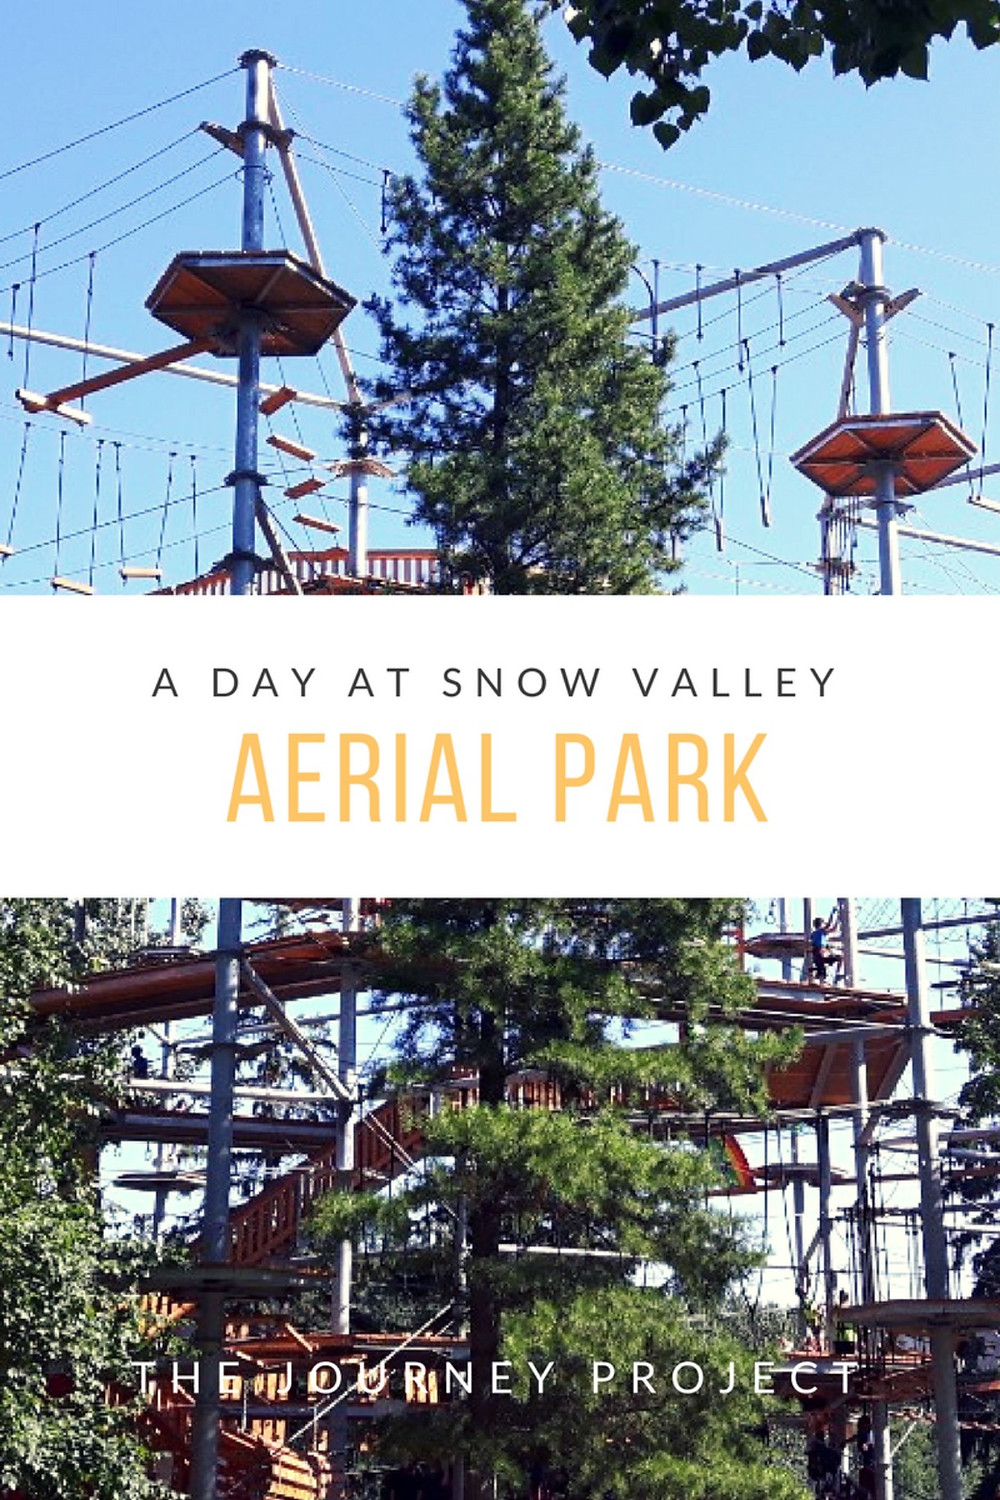 A Day At Snow Valley Aerial Park | There are obstacle courses in the air. If that doesn't set your adventurous heart pumping, then maybe you didn't hear me right. Obstacle courses. In the air.